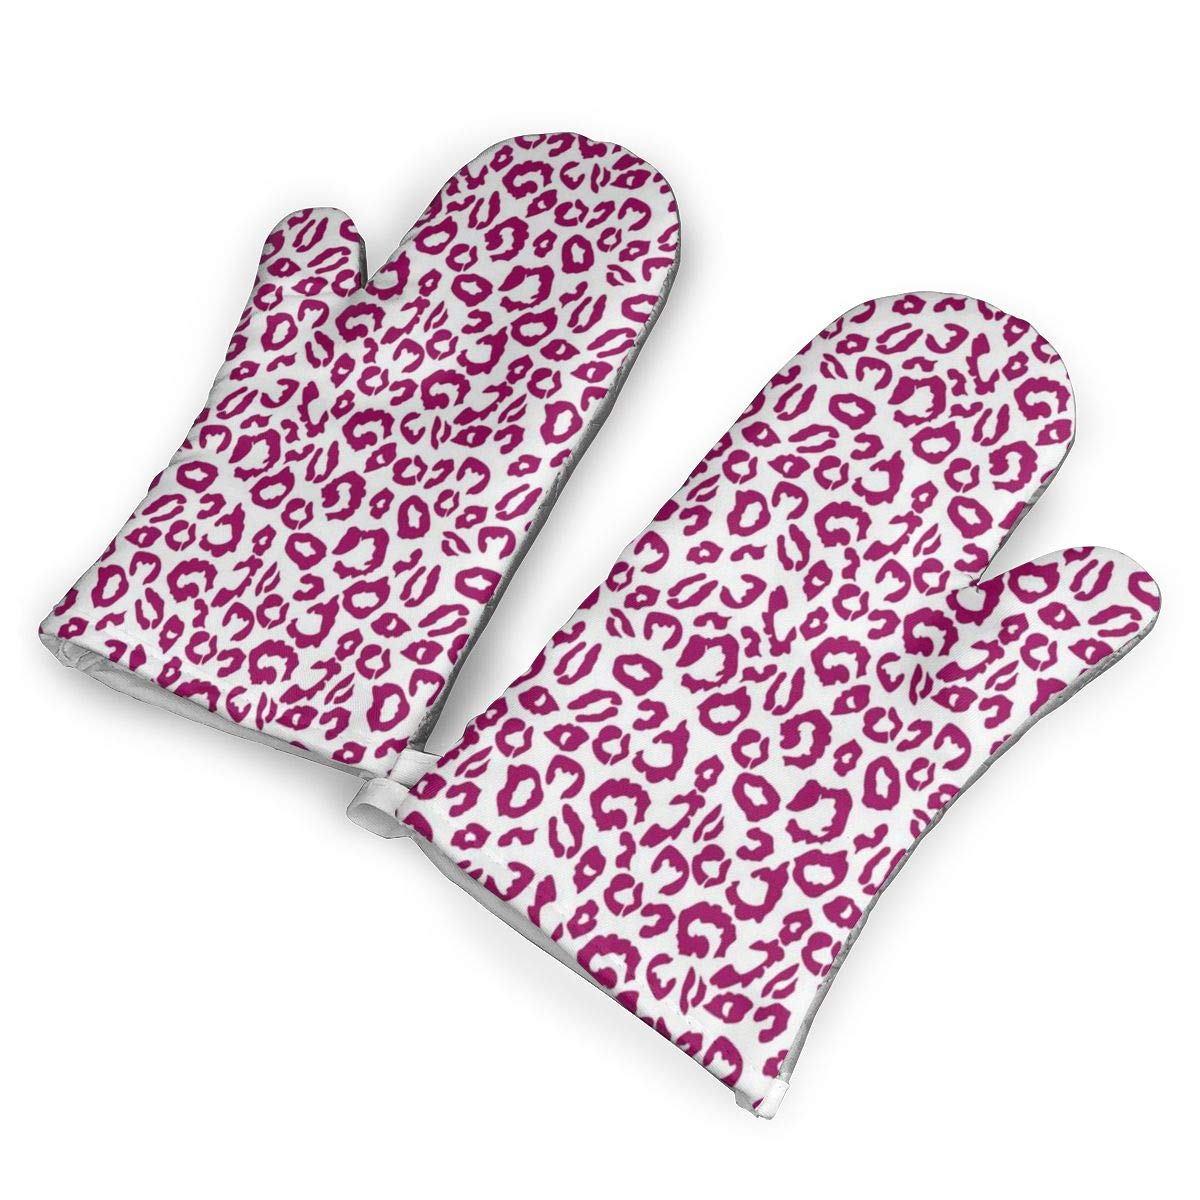 Victoria-Ai Powder Leopard Pink Oven Mitts Premium Heat Resistant Kitchen Gloves Non-Slip Easy to Use Baking Mittens for BBQ/Cooking/Grilling